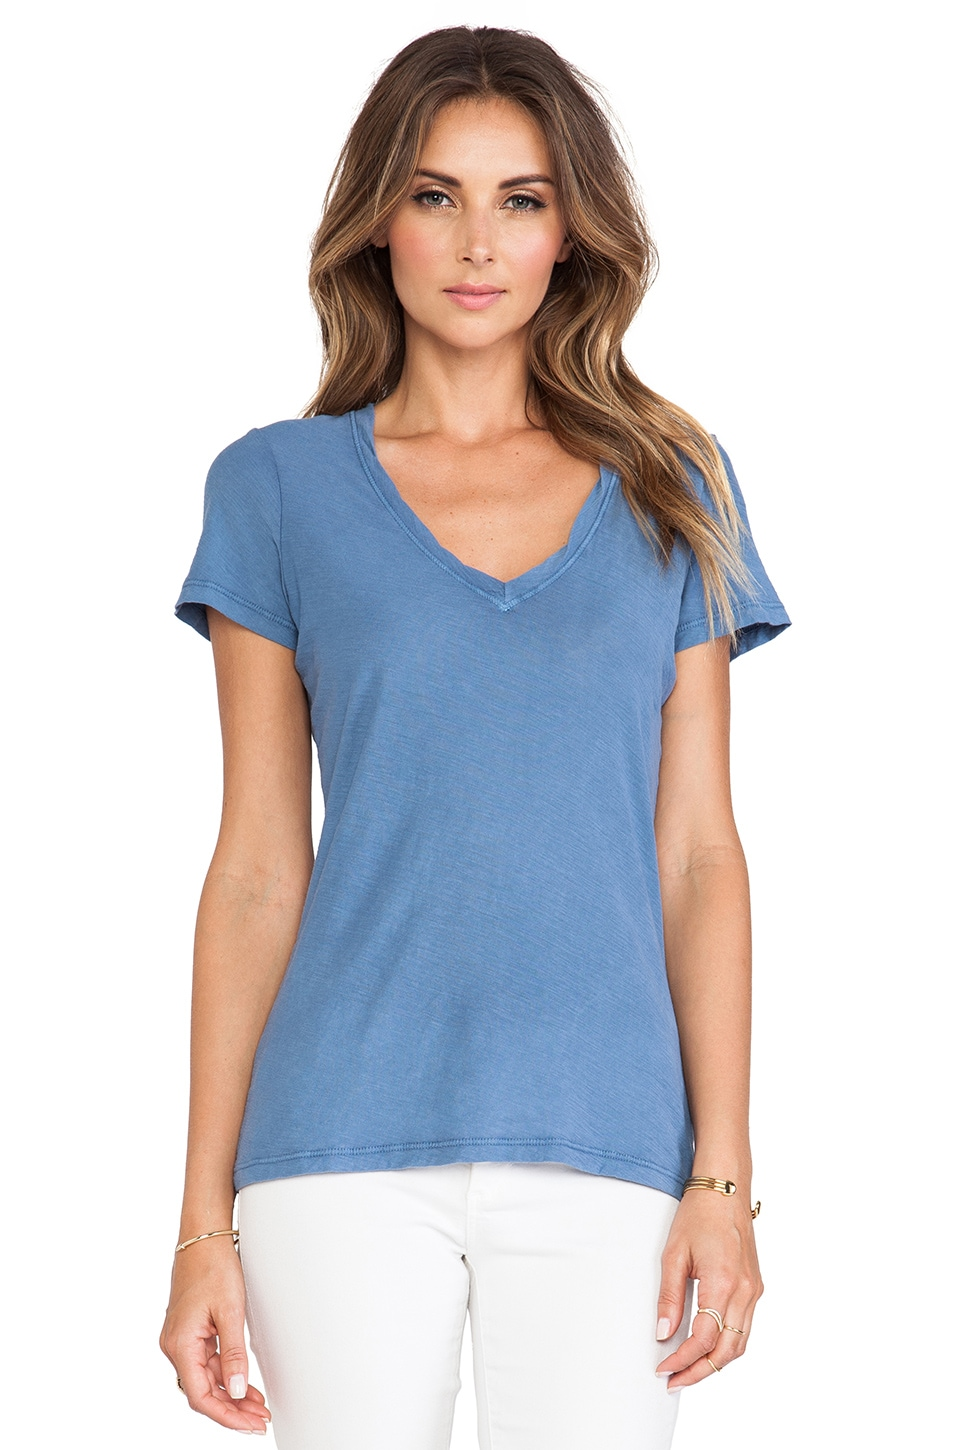 James Perse Casual Tee w/ Reverse Binding in Denim